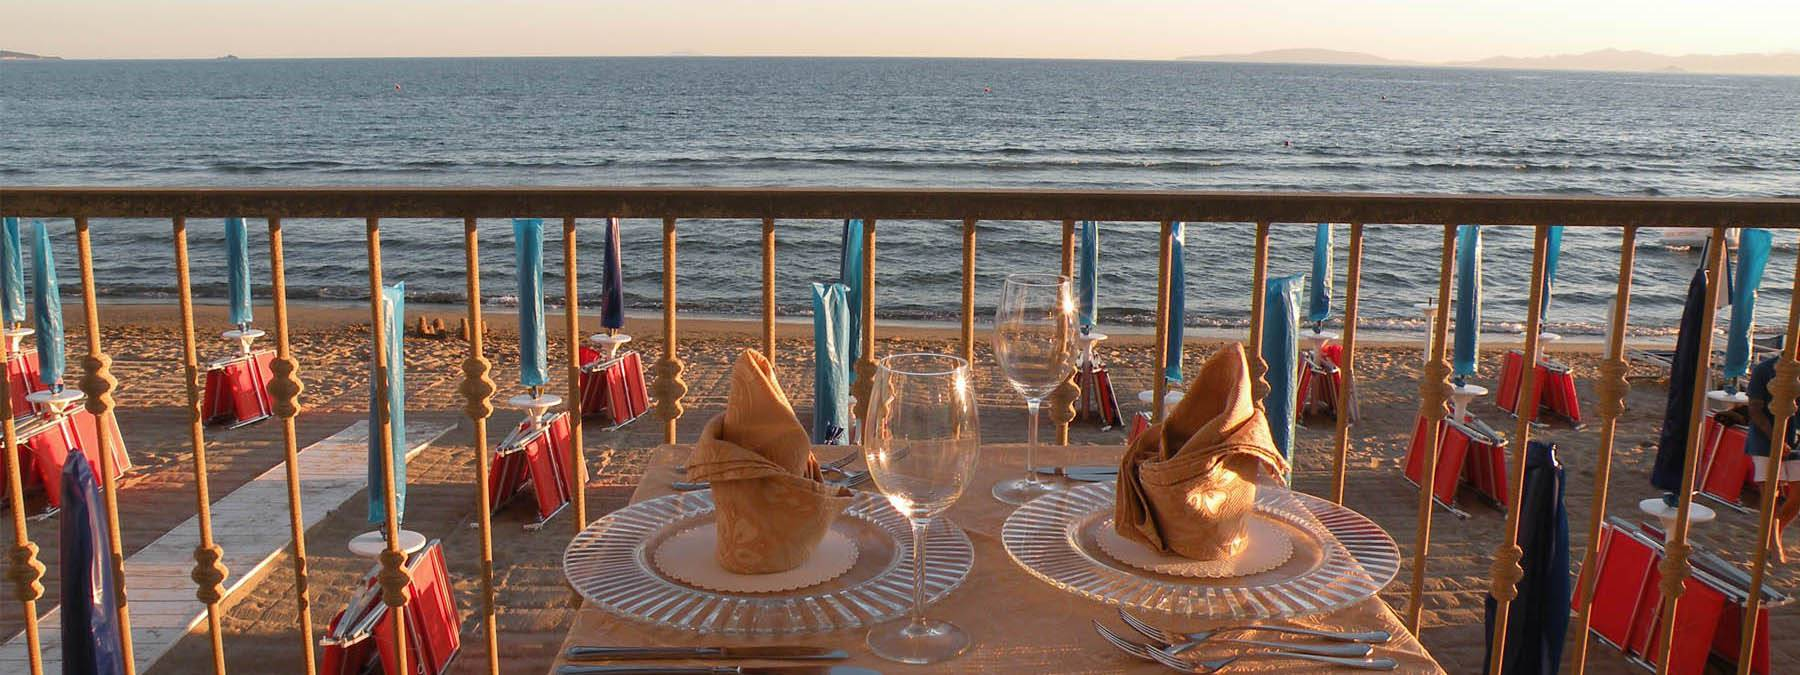 Hotel 3 stelle a Follonica, mare, Toscana